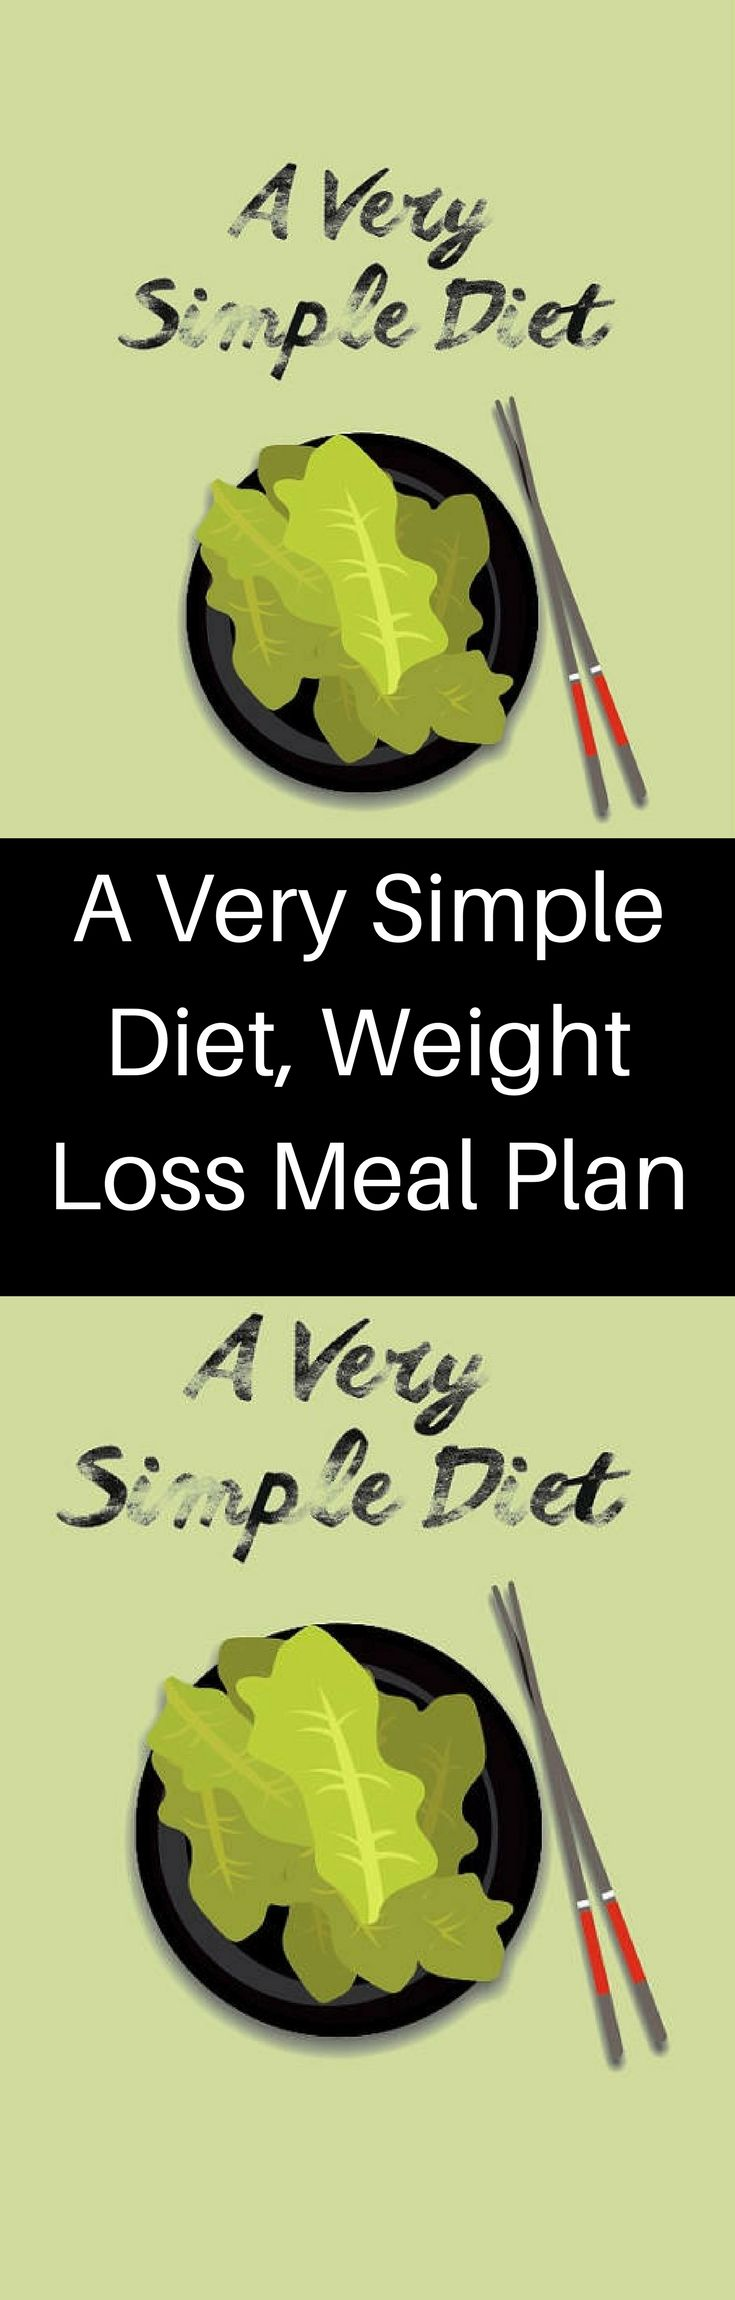 A Very Simple Diet, Weight Loss Meal Plan, Weight Loss Meal Planner, Diet Meal Plan, Fast Weight Loss, Diet Plans, Best Weight Loss,The easier a diet is to follow, the better the odds of sticking to it with greater results. I've broken this weight loss diet down so it's as simple as possible for you to follow.   There are two plans of 1500 and 1800 calories but you can add or subtract to that amount to accommodate your metabolism. #weightloss #recipe #food #ad